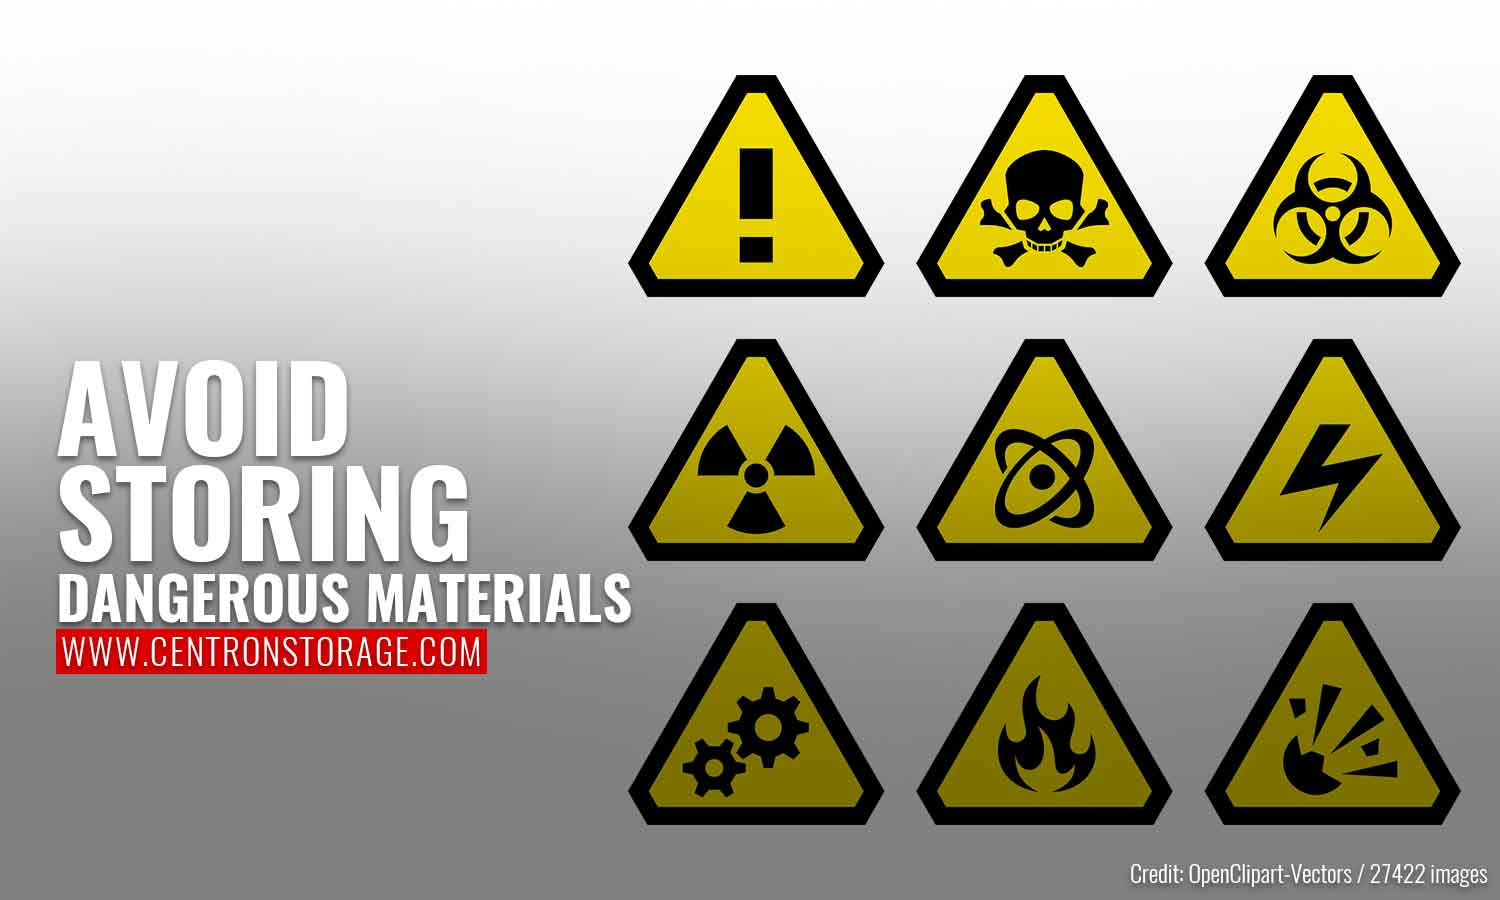 Avoid storing dangerous materials